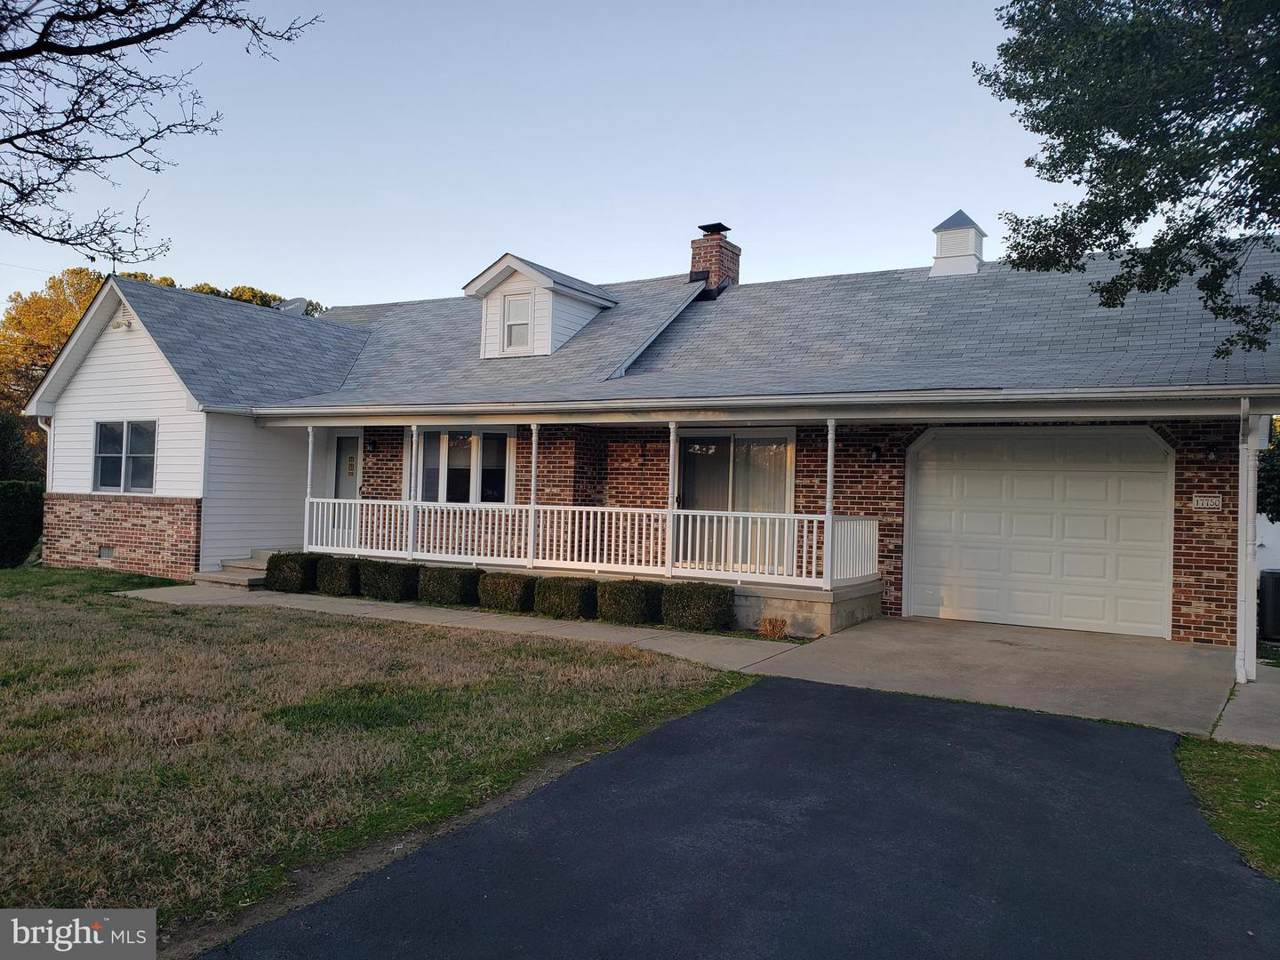 17750 Piney Point Road - Photo 1